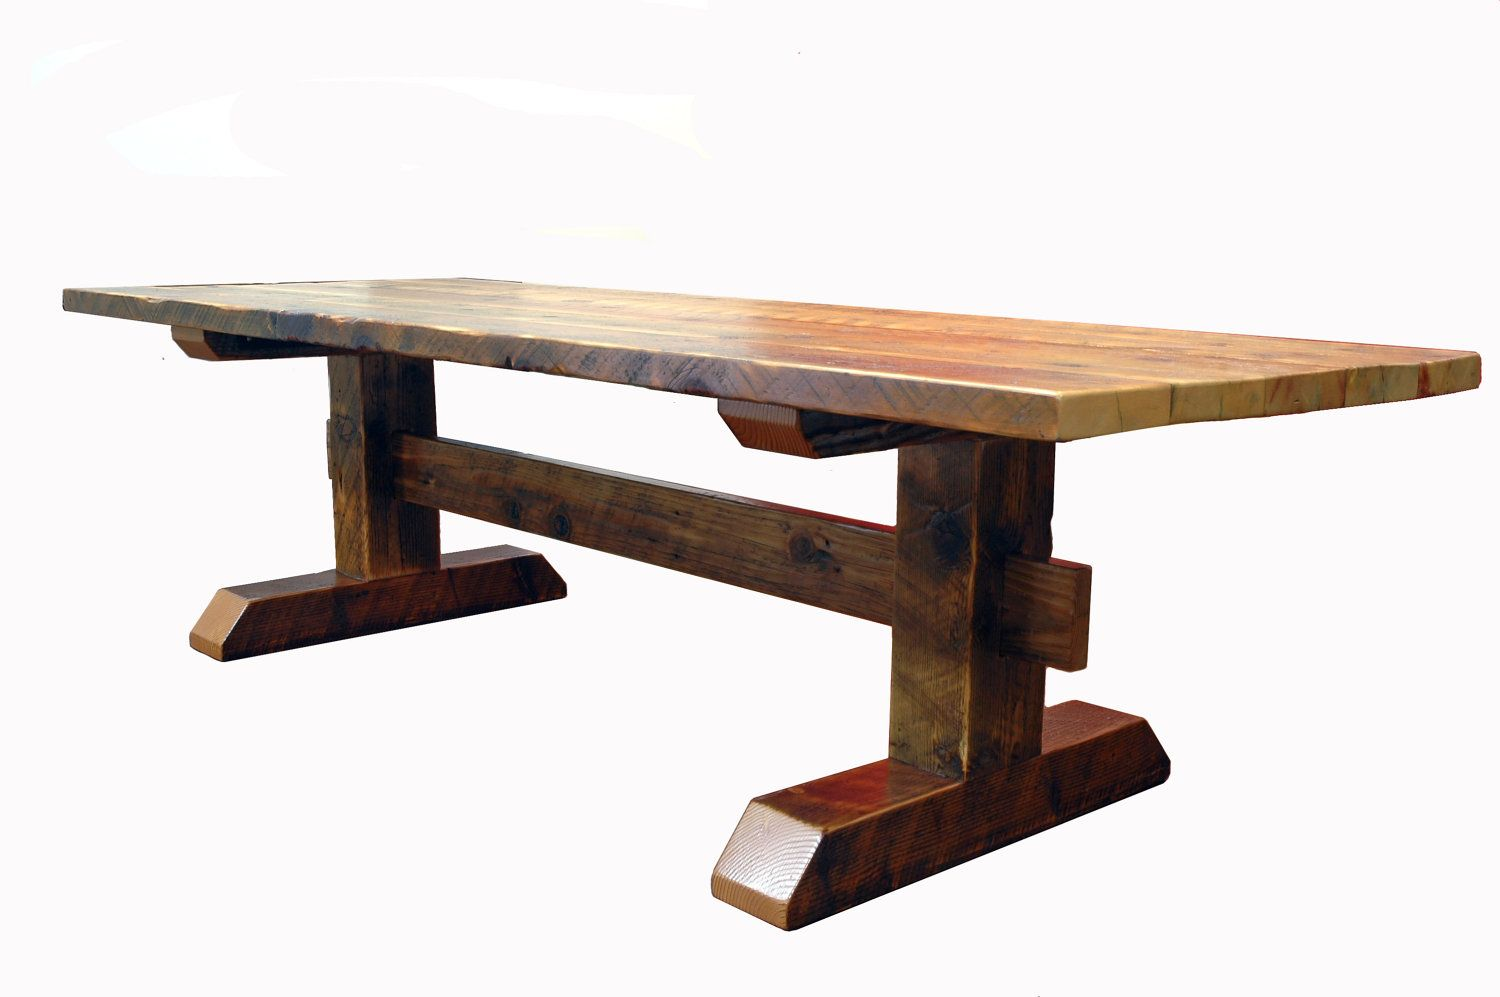 custom kitchen tables Reclaimed Timber Frame Trestle Table Farm Table Custom Item Trestle Dining TablesFarmhouse